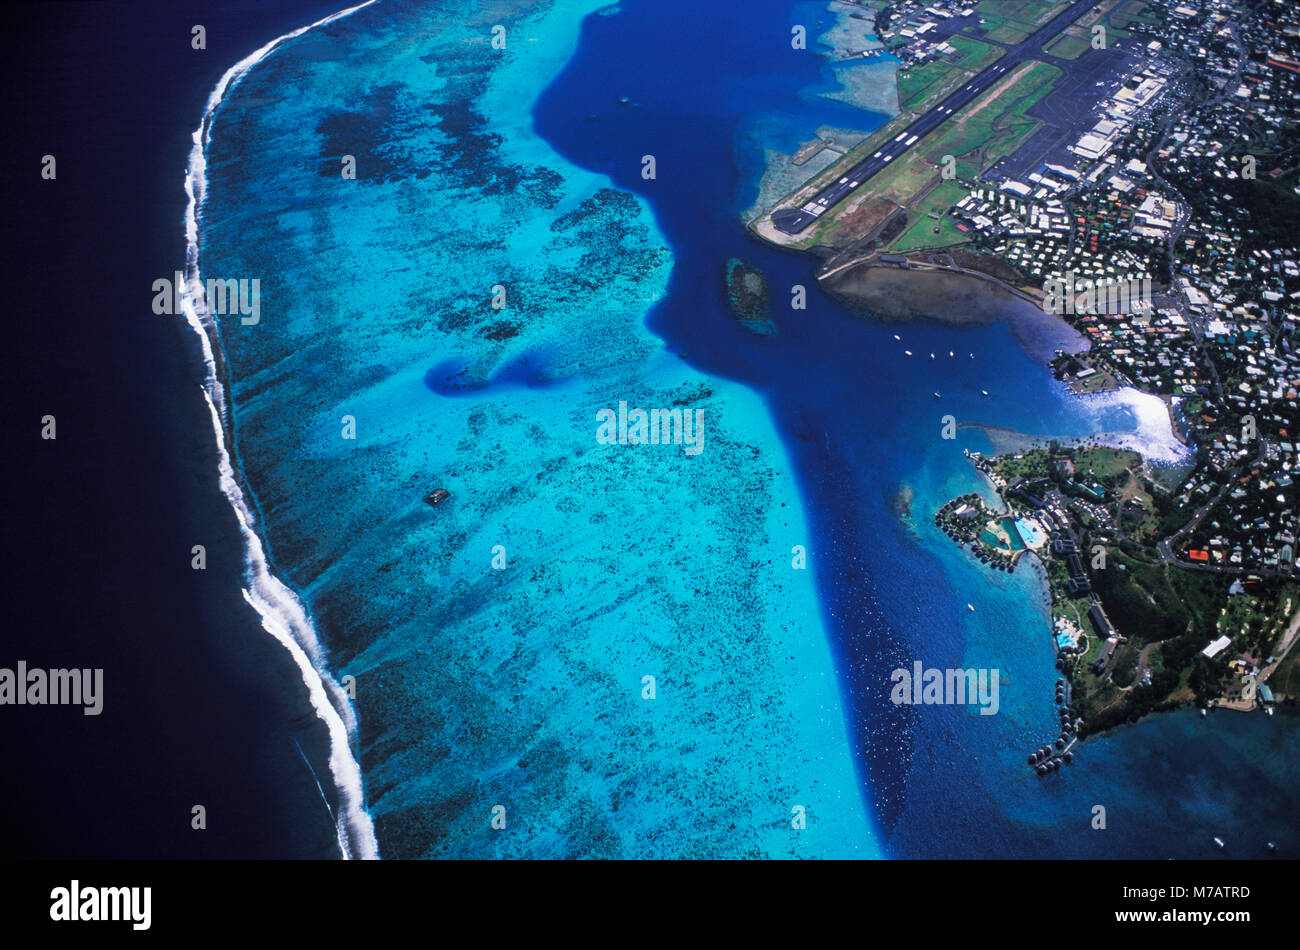 Arial view of a city along the sea, Hawaii, USA - Stock Image